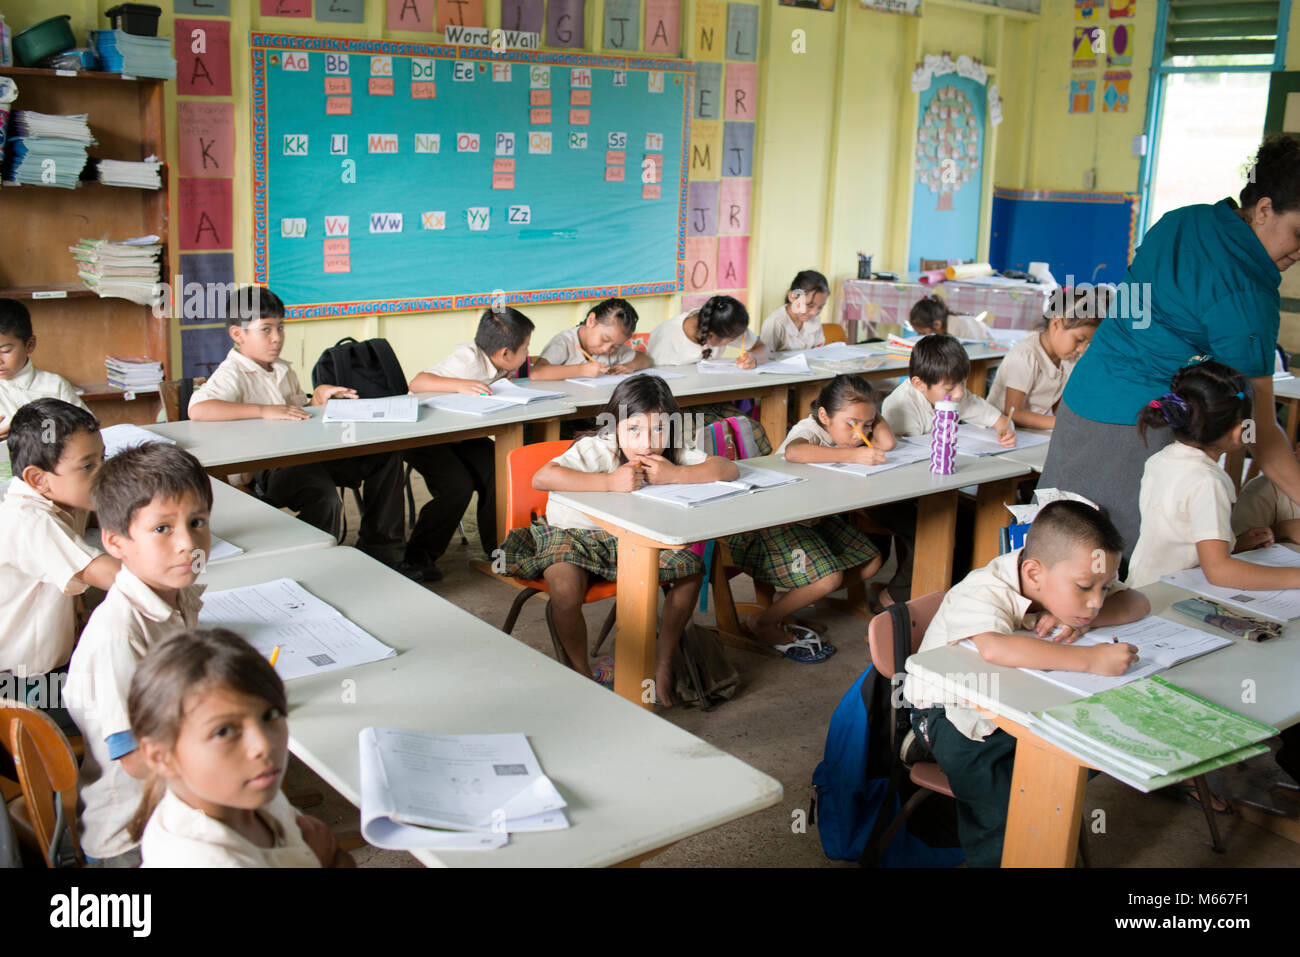 Yucatec Maya school children studying in their classroom with their teacher. San Antonio, Cayo District, Belize. - Stock Image